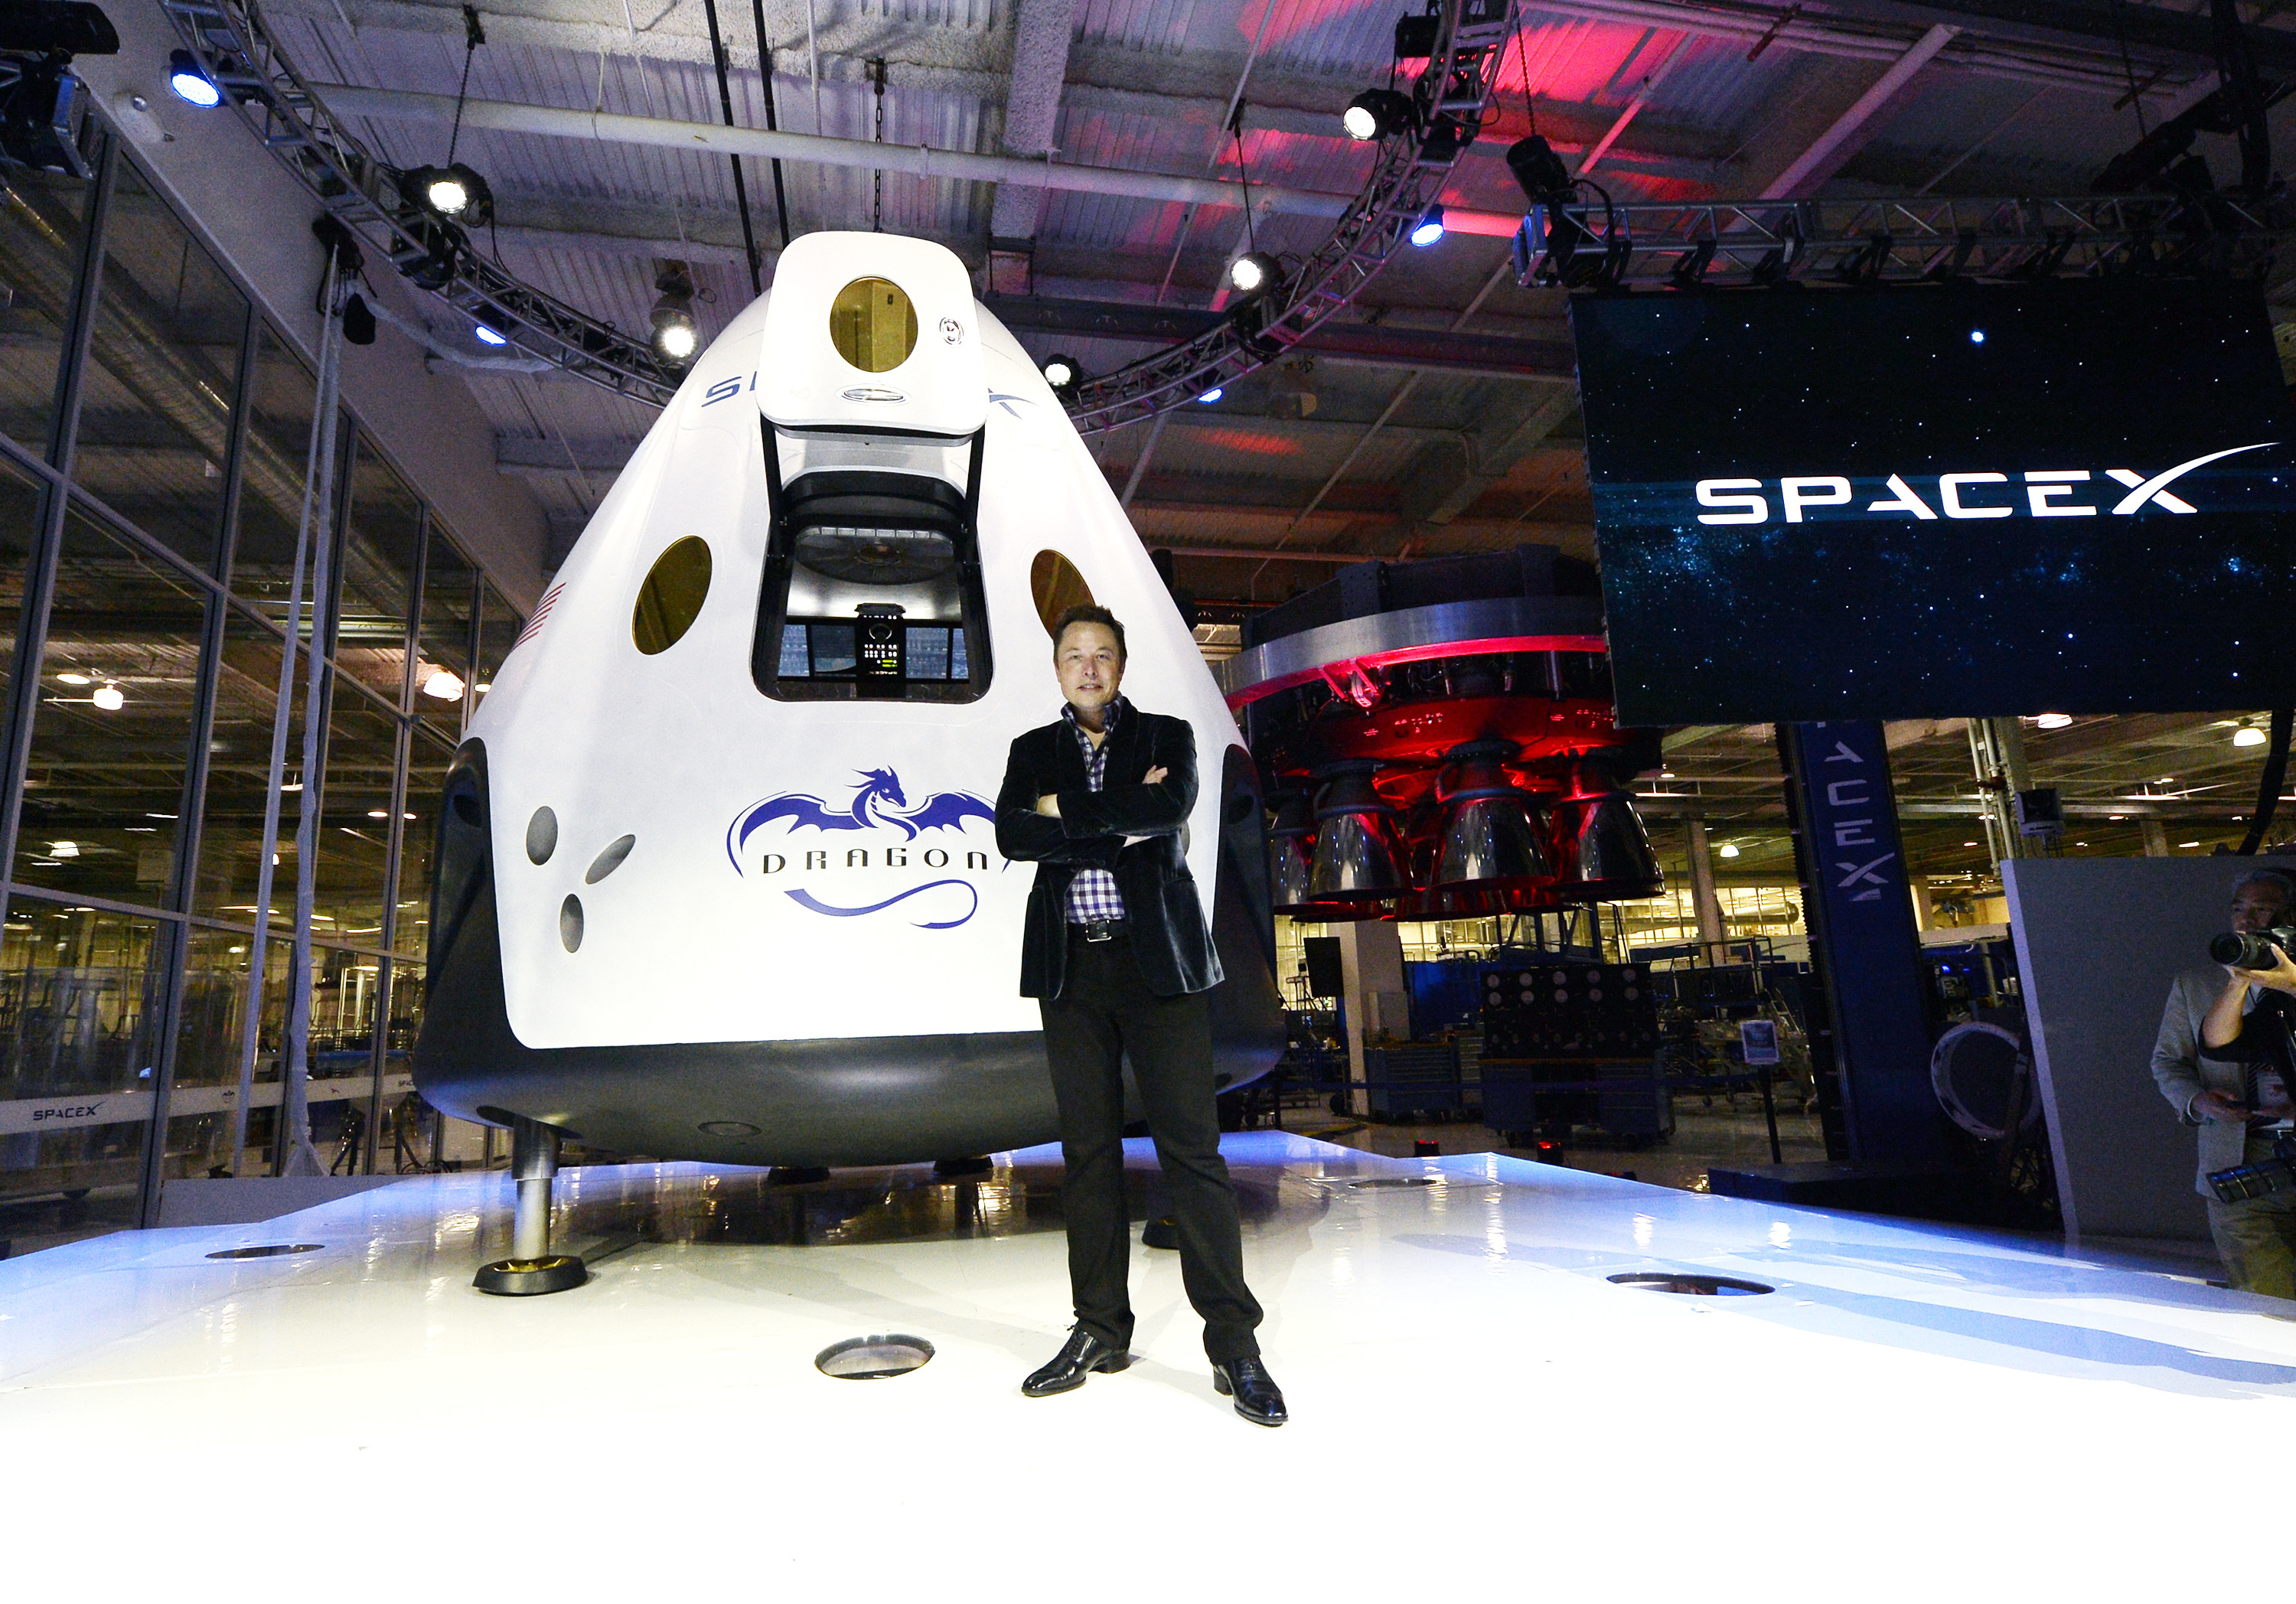 SpaceX plans to send two people around the Moon